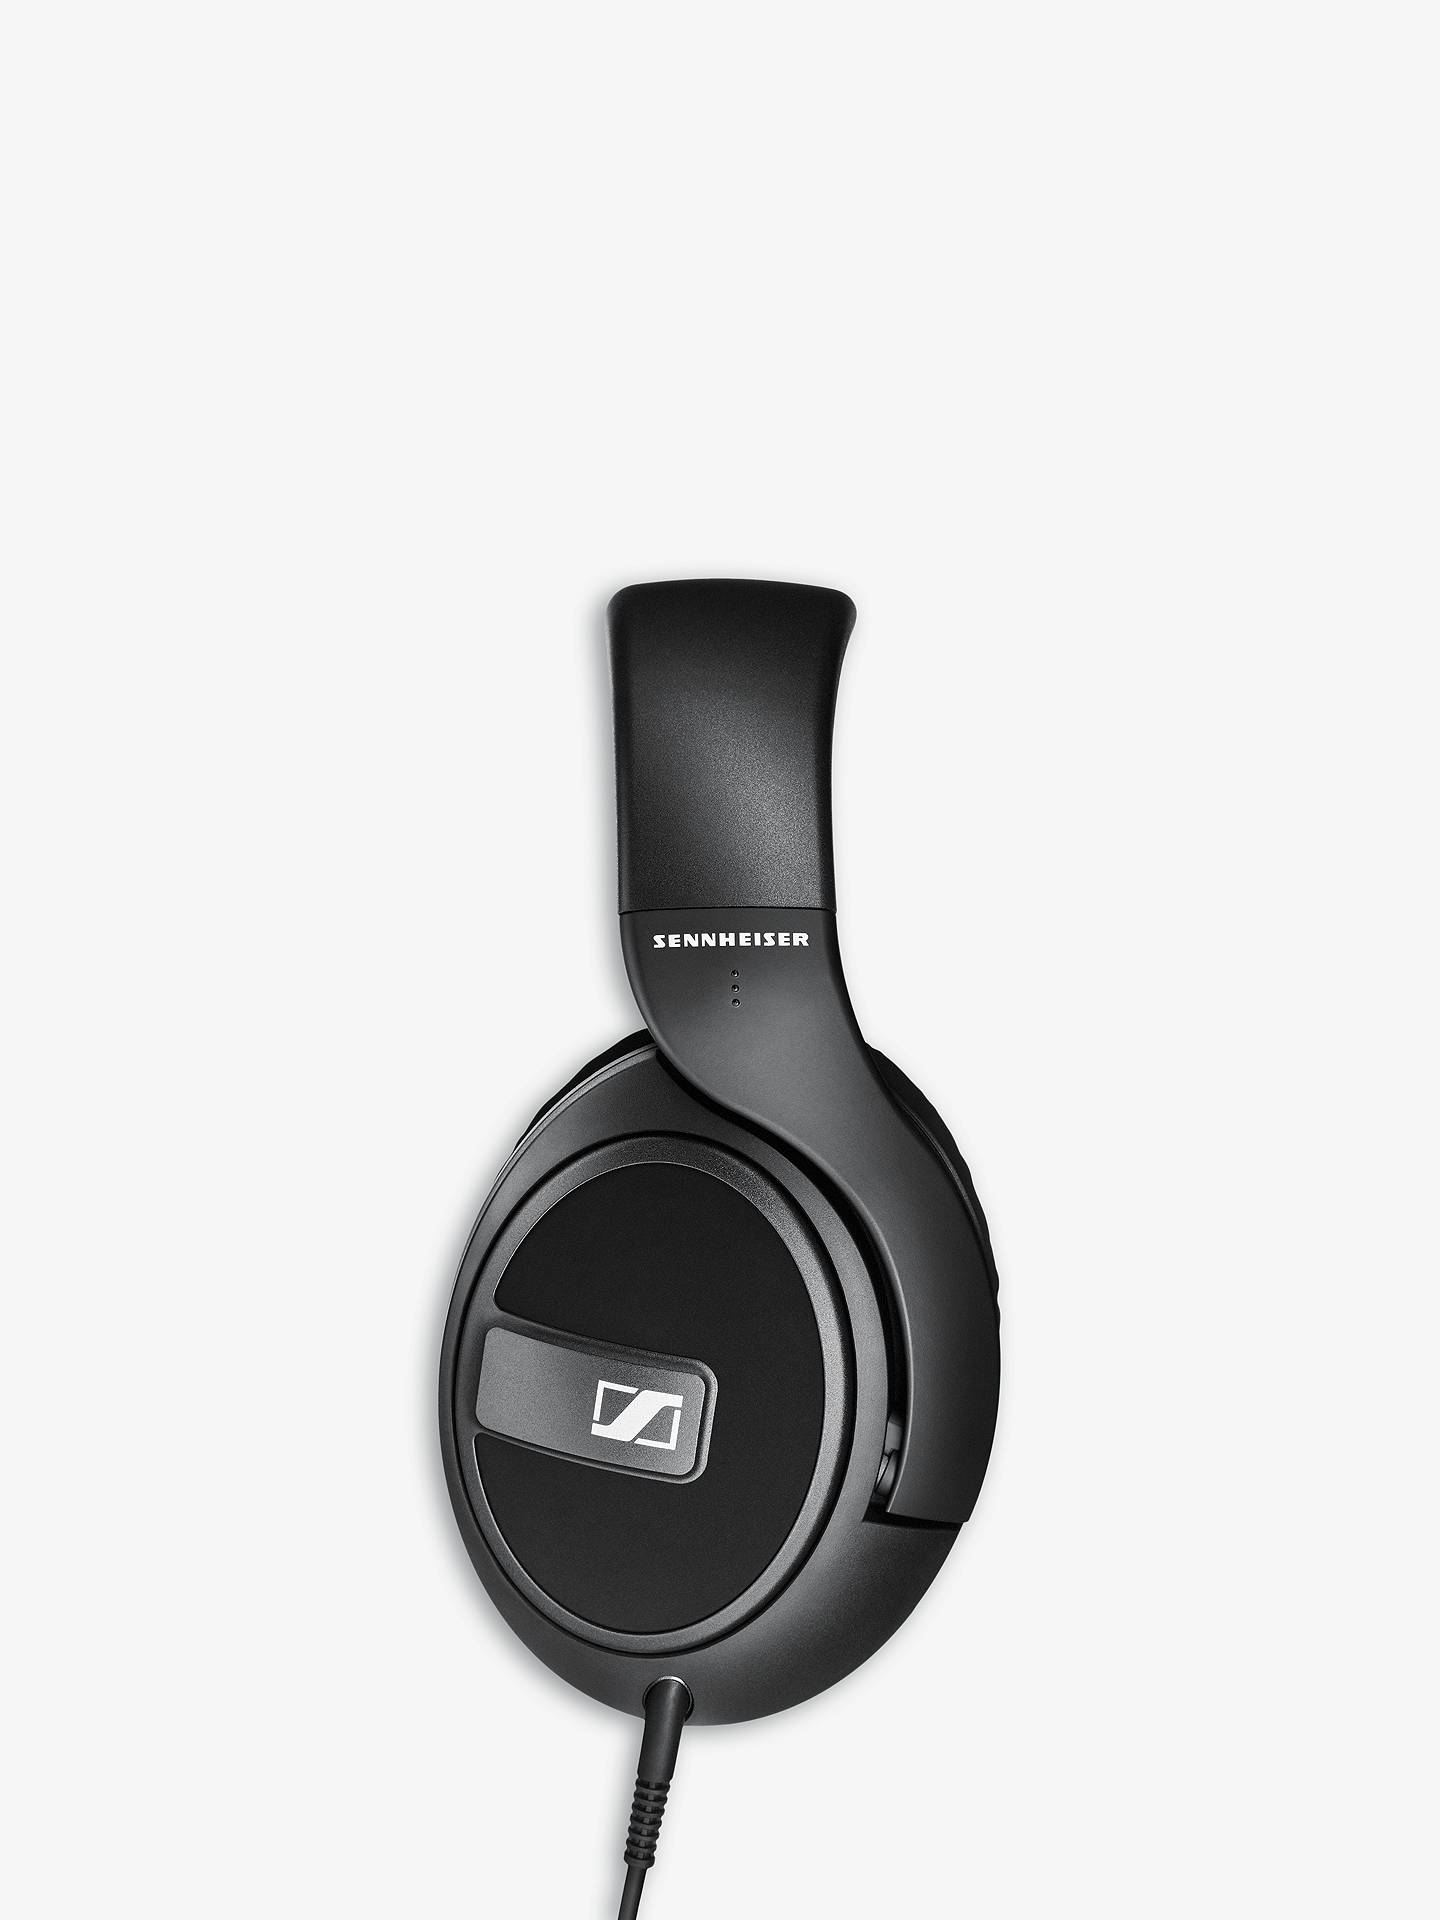 BuySennheiser HD 569 Full Size Headphones with E.A.R. Technology & Inline Microphone & Remote, Black Online at johnlewis.com